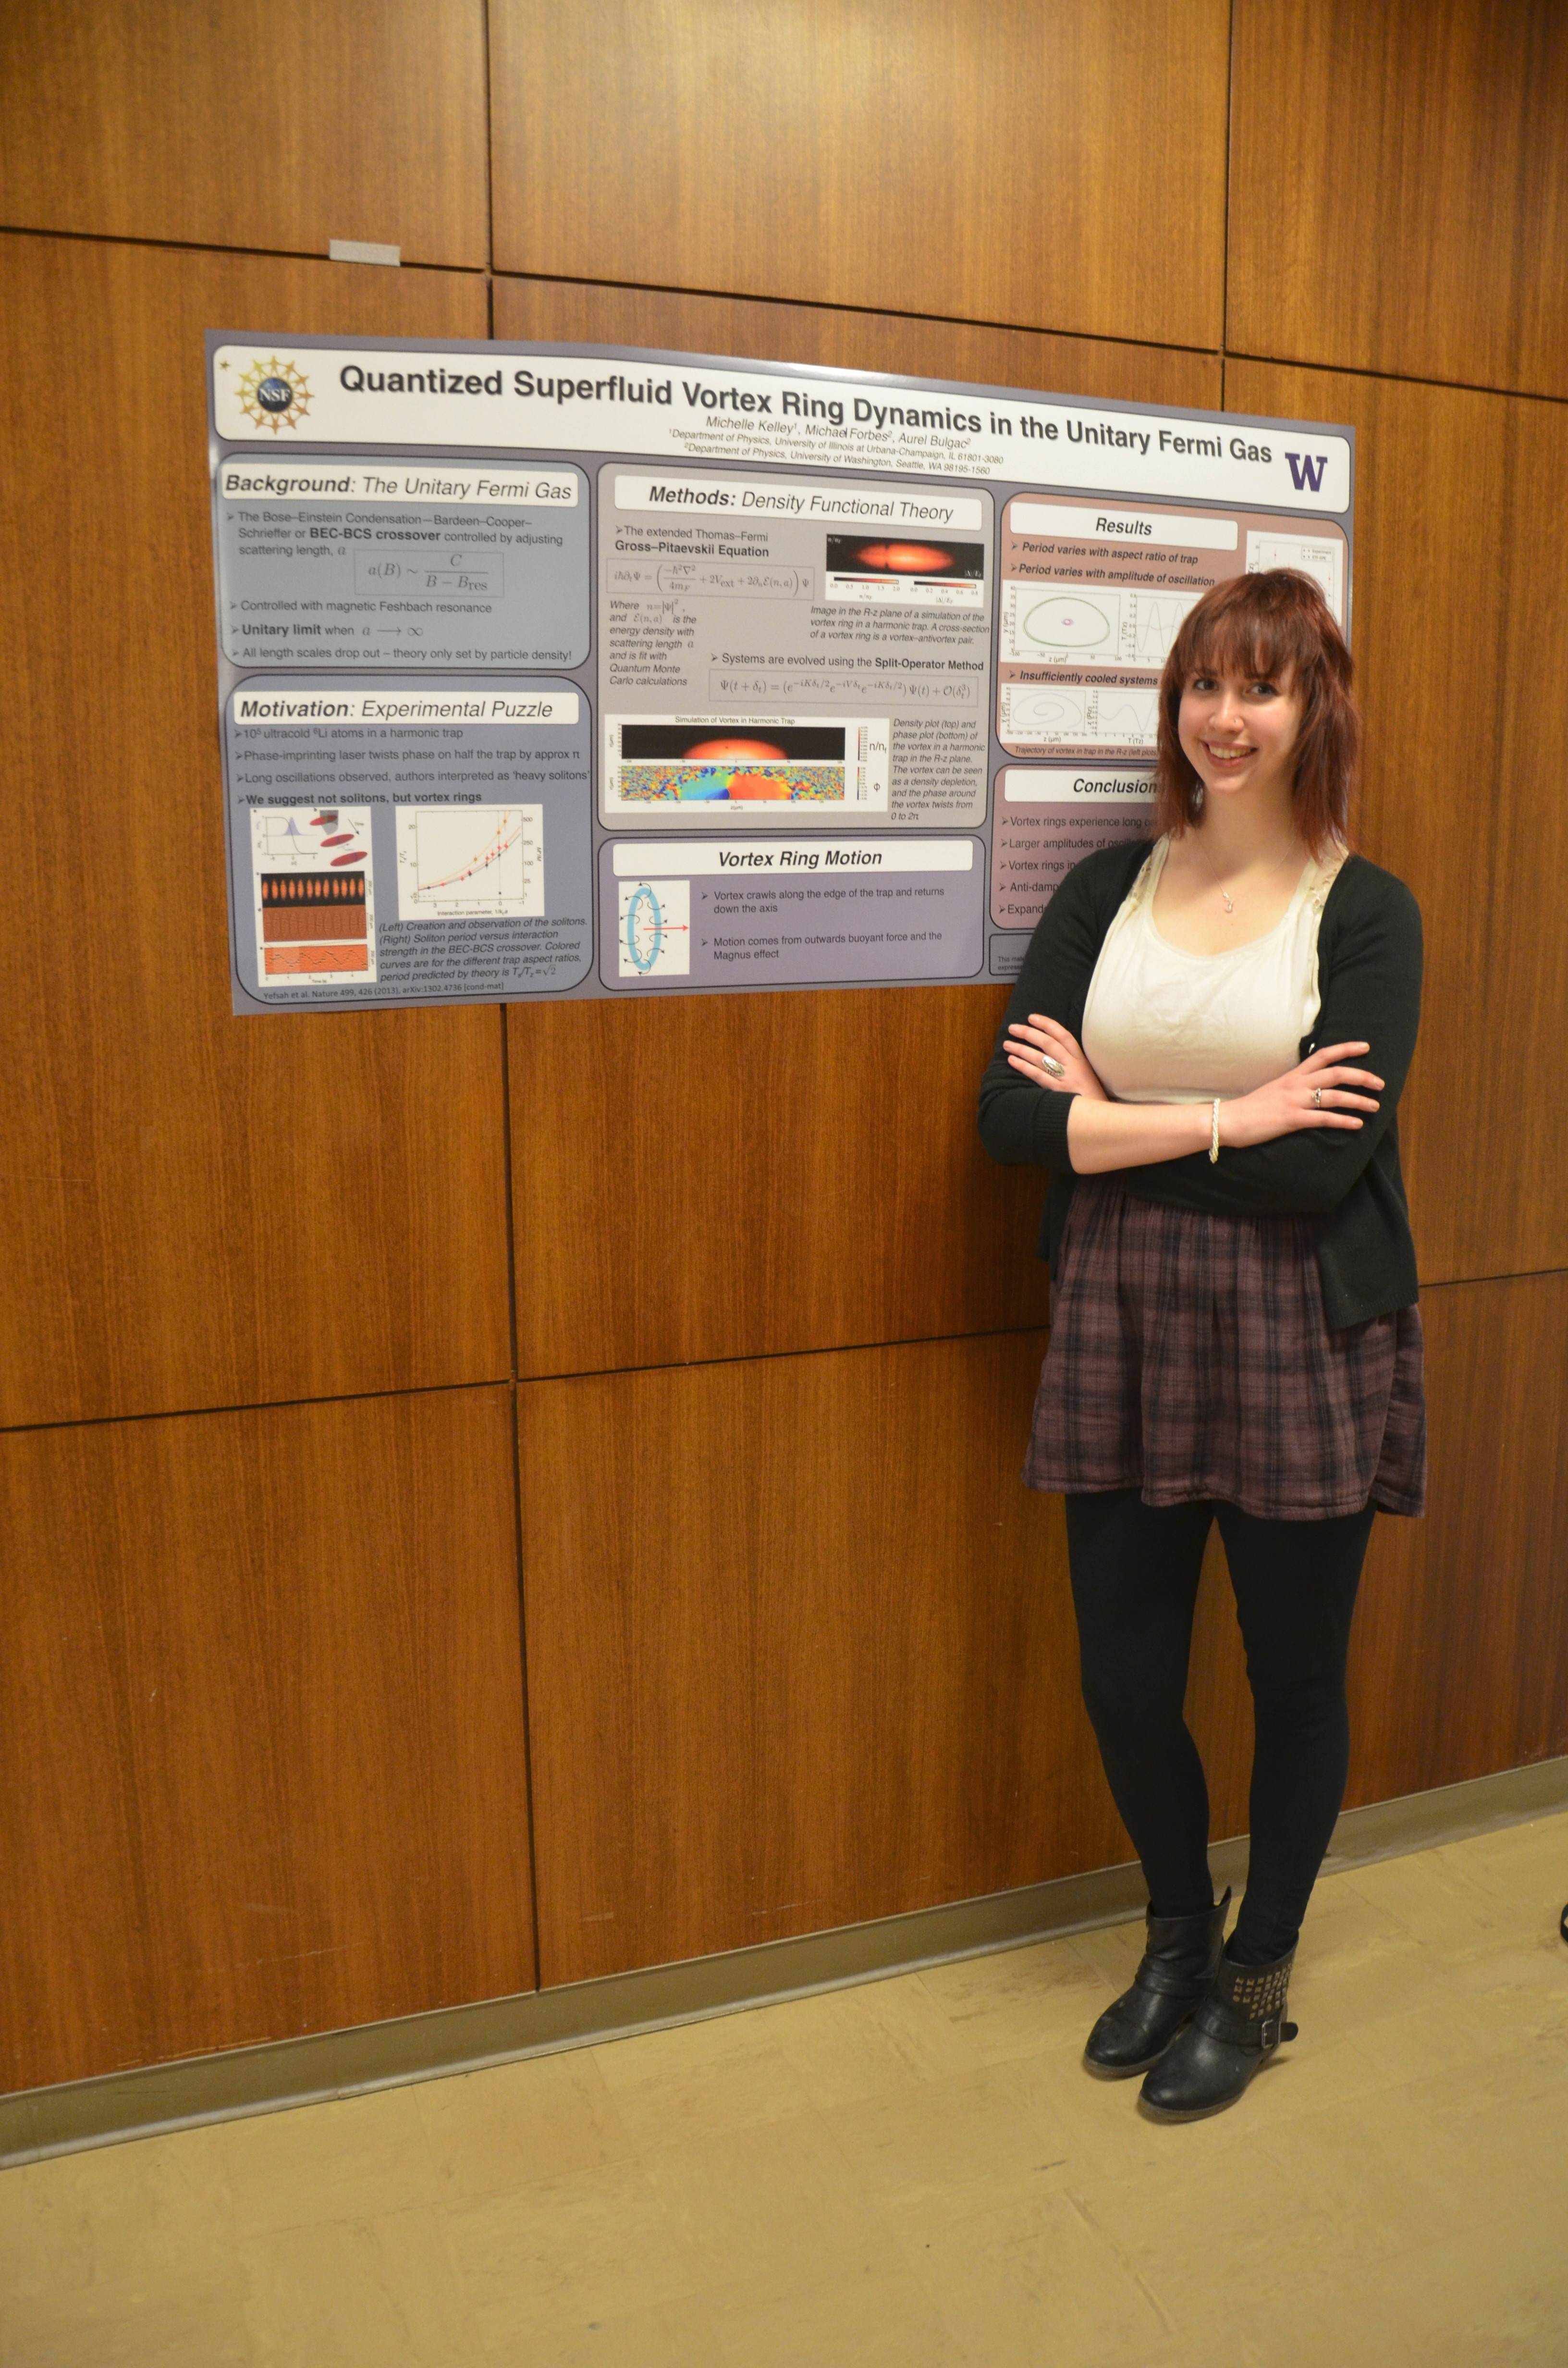 Schaumburg native Michelle Kelley will be a graduate student at the University of Cambridge in England after earning a prestigious Gates Cambridge Scholarship valued at $50,000. She's with her poster that won an award at the 2014 Midwest Conference for Undergraduate Women in Physics at the University of Chicago.